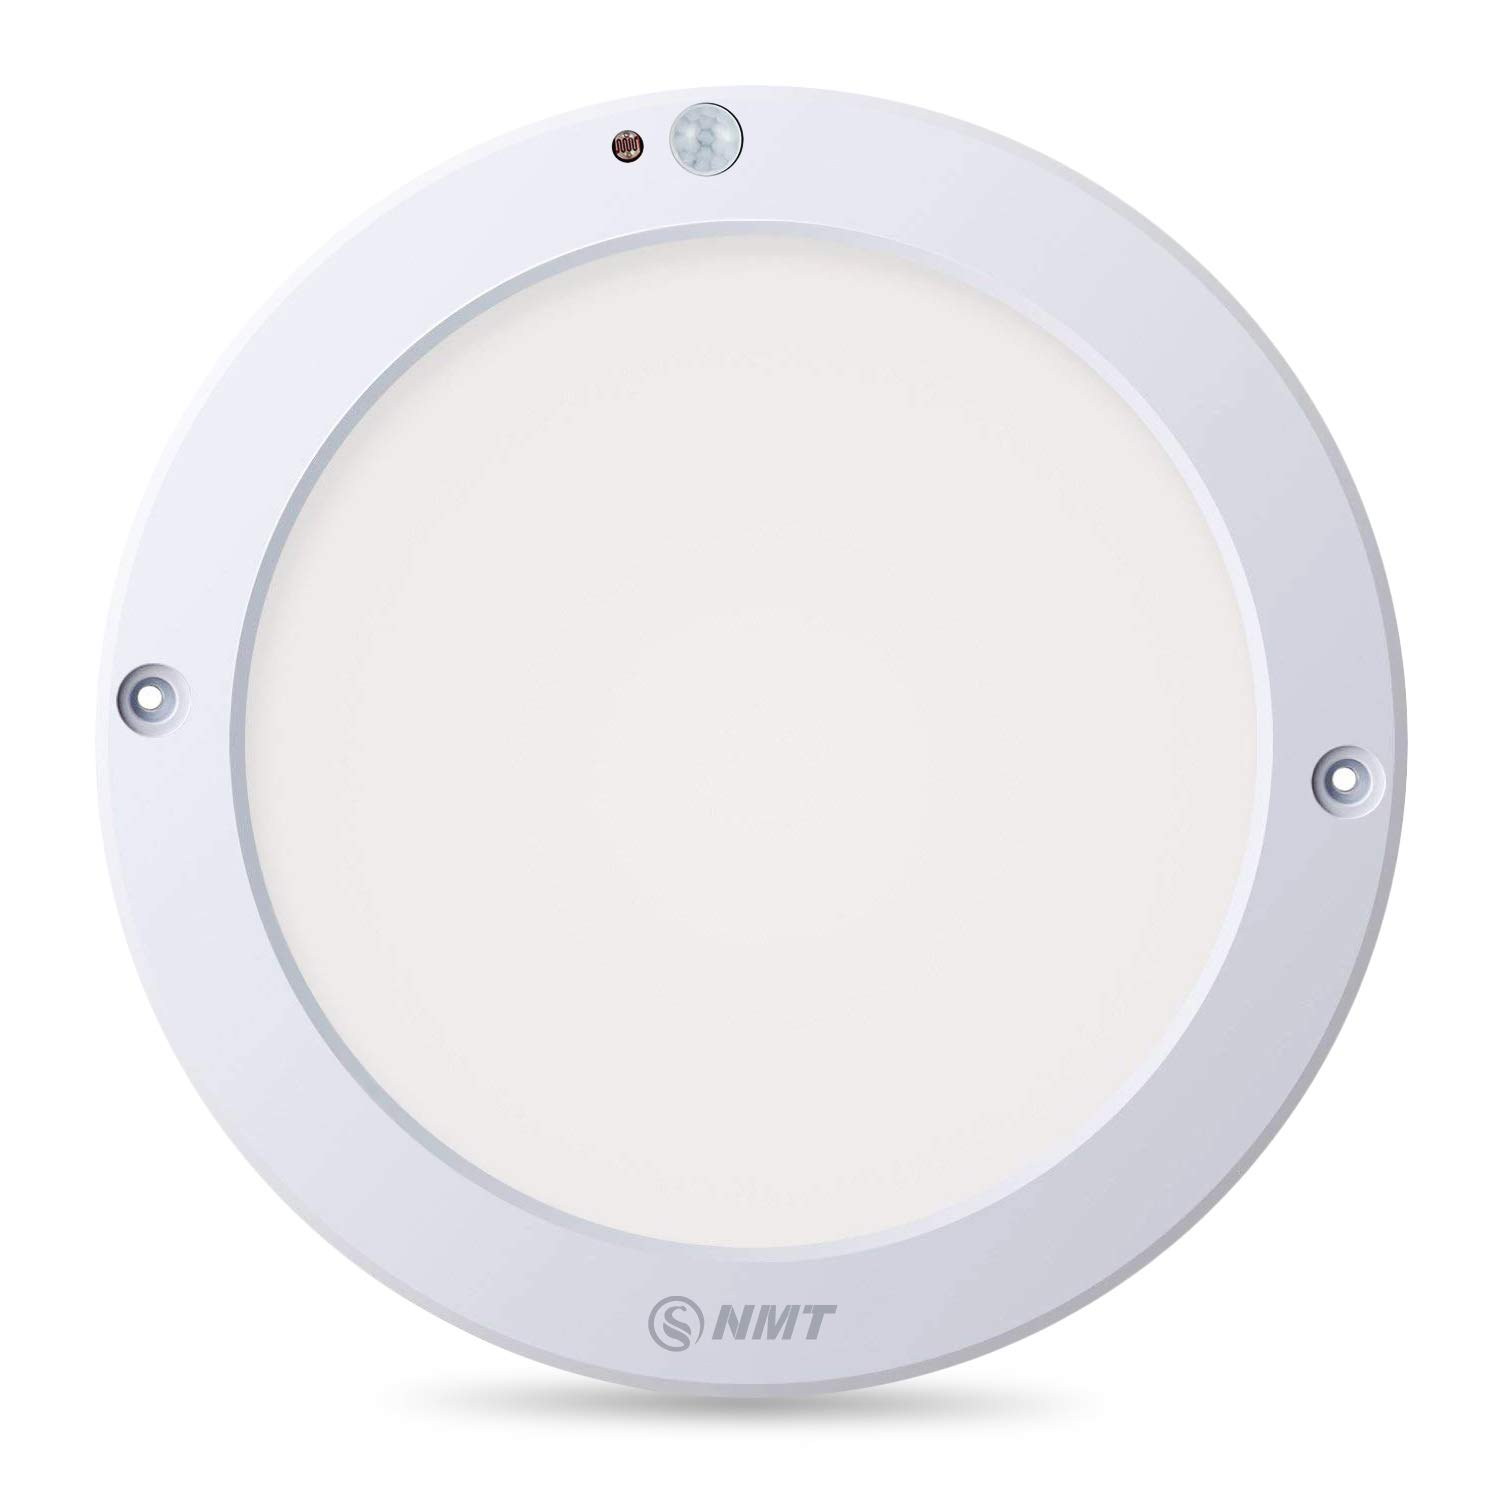 LED Panel Light PIR Motion Sensor Body Detector Ceiling 15W 1200LM 4000K Φ8.66 Inch Surface Mounted Lights Round Flush Mount Light For Stairs Depot Bathroom Toilet (100W Incandescent Bulbs Equivalent)